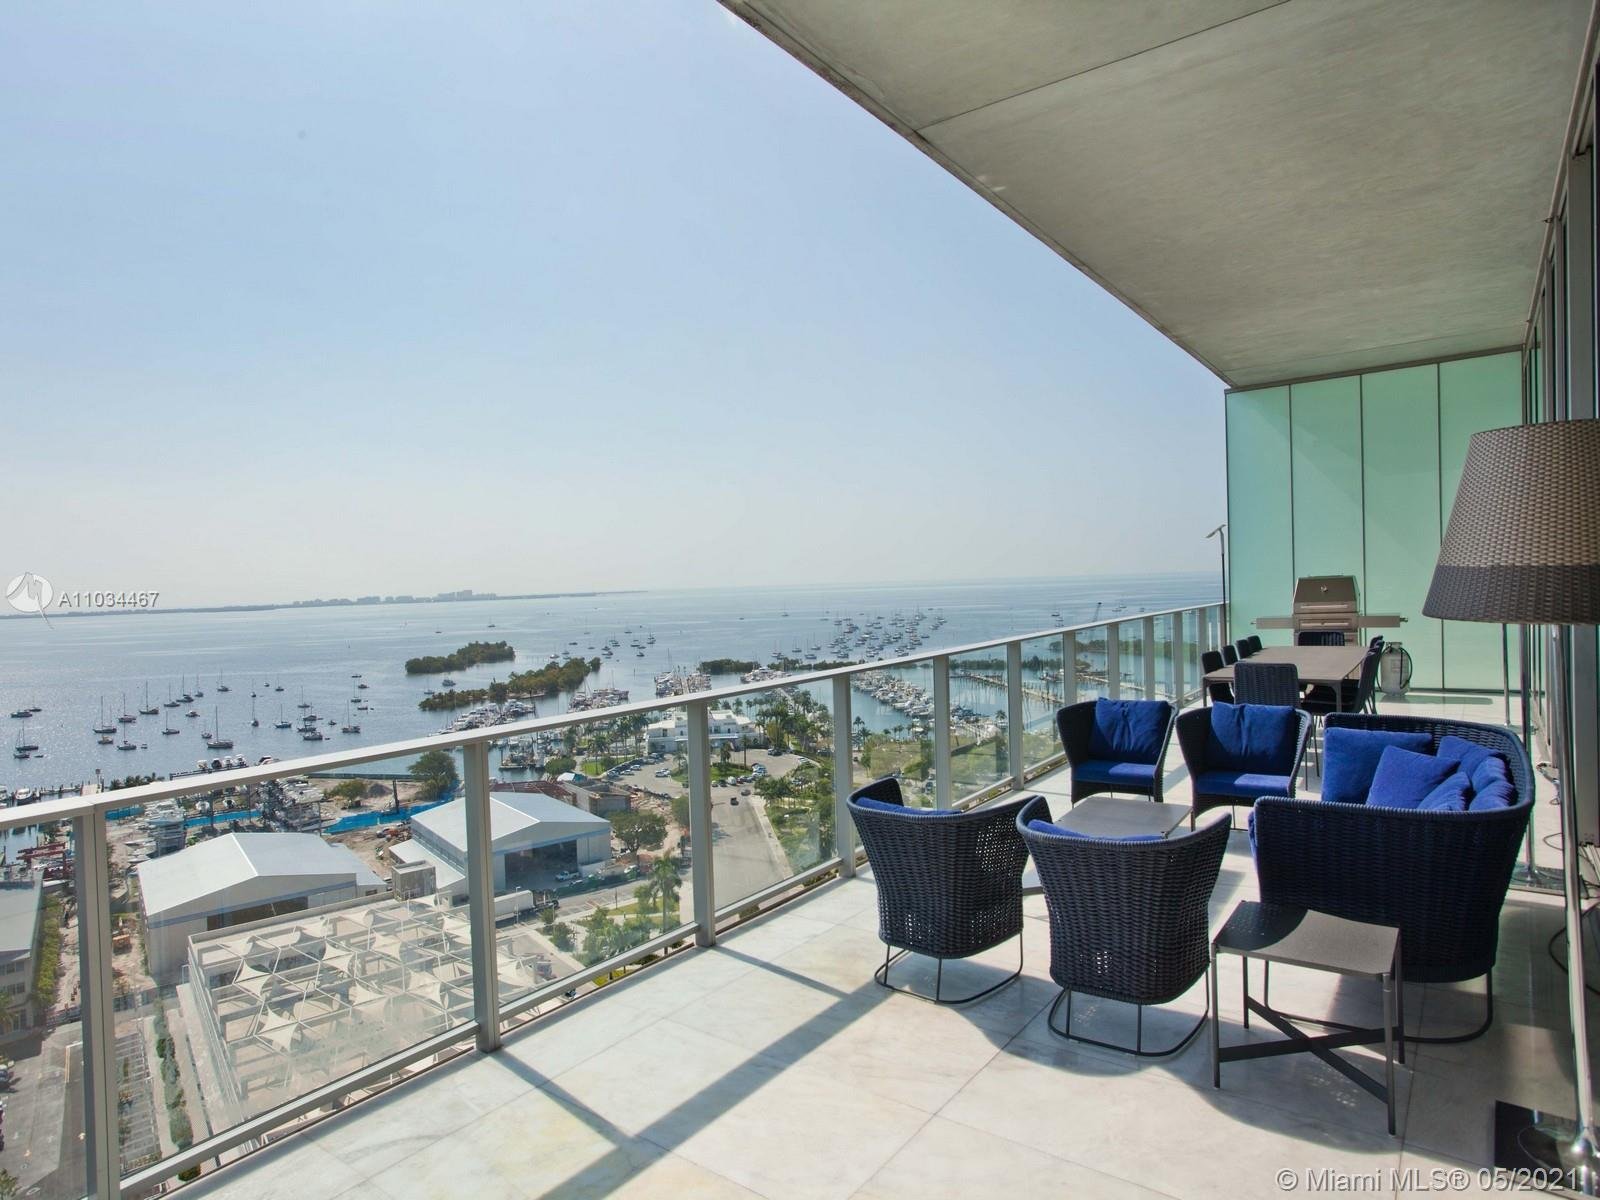 Spectacular Modern luxury condo at the Grove at Grand Bay South Tower in Historic Coconut Grove.  An iconic residence that evokes luxury. Distinctive contemporary design includes 12 foot floor to ceiling glass doors and unobstructed panoramic views of beautiful Biscayne Bay.  This 6 bedroom and 6 1/2 bathrooms unit is one of a kind, including natural light in every room and and open spacious floor plan.  Original finishes from the developer were entirely upgraded to the finest materials and craftsmanship.   Upgraded finishes includes Poggenpohl Kitchen, Sub-Zero Fridge, Freezer and Wine Cooler, Marble Bathroom floor to ceiling, Italian Cabinetry in Bathrooms, Custom Italian Library, Custom Cabinetry in Laundry, Two and half car garage with custom cabinetry and commercial resin flooring.